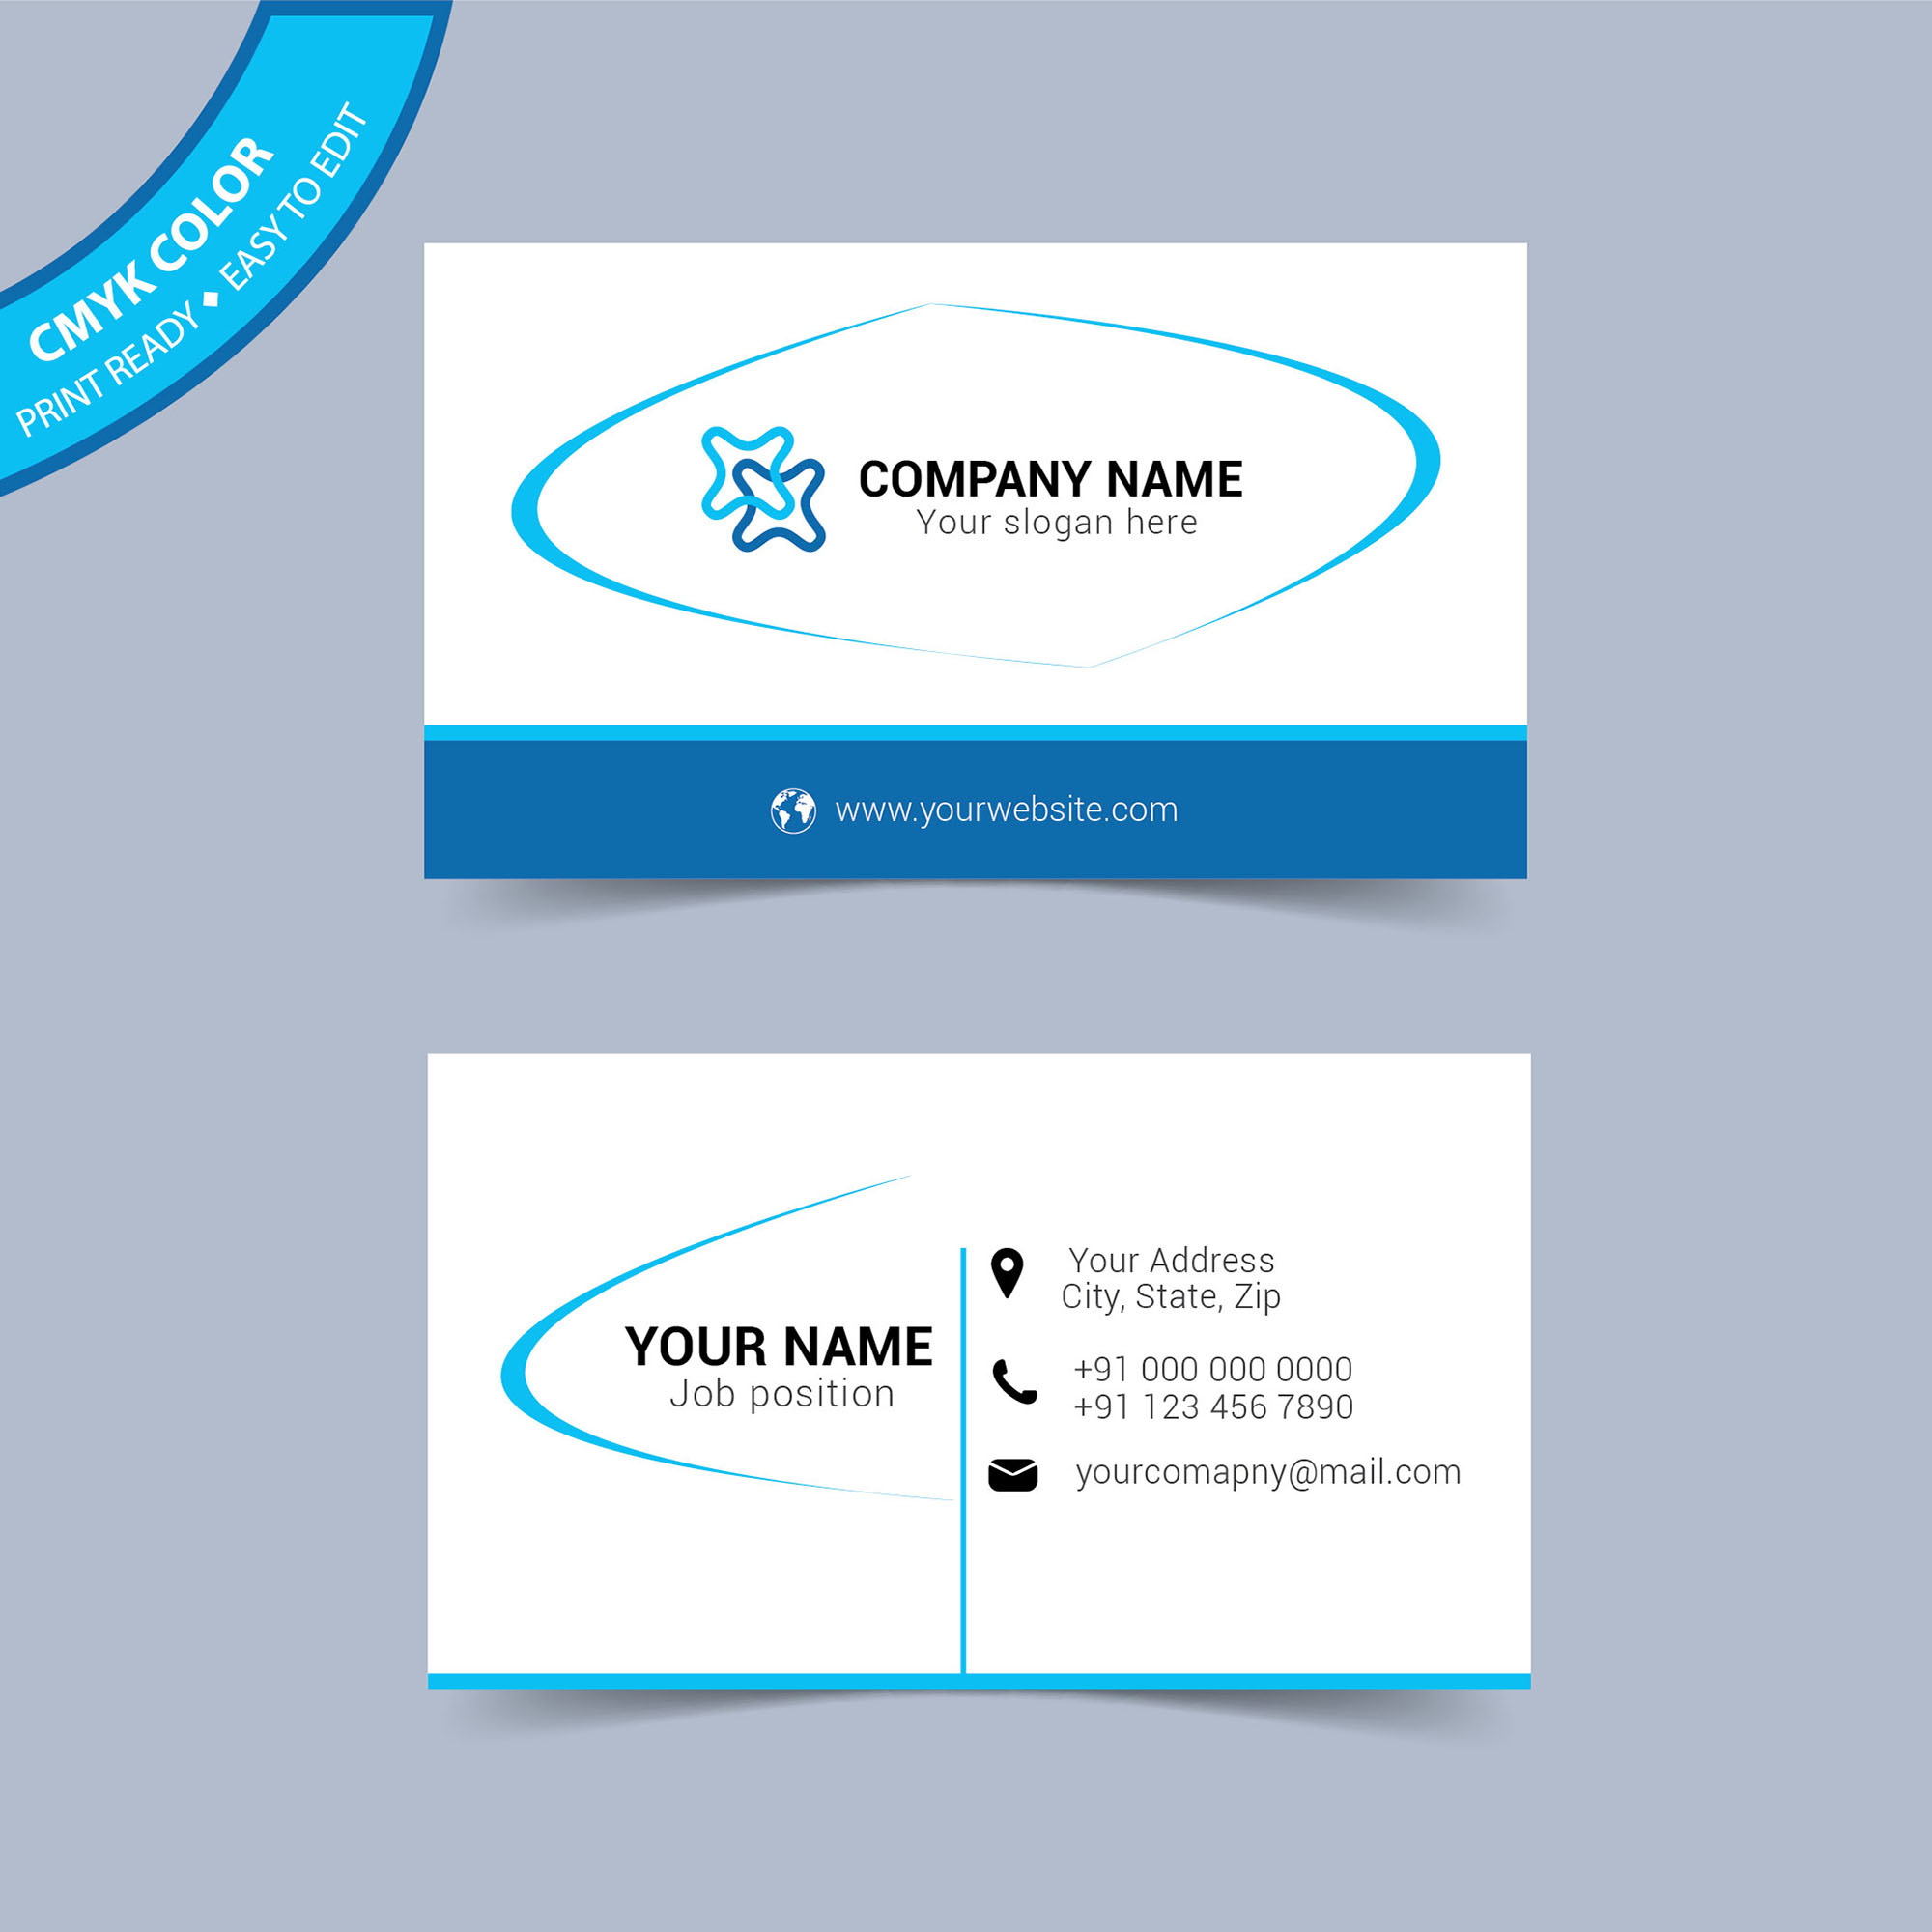 Business card sample free download free vector wisxi business card business cards business card design business card template design templates colourmoves